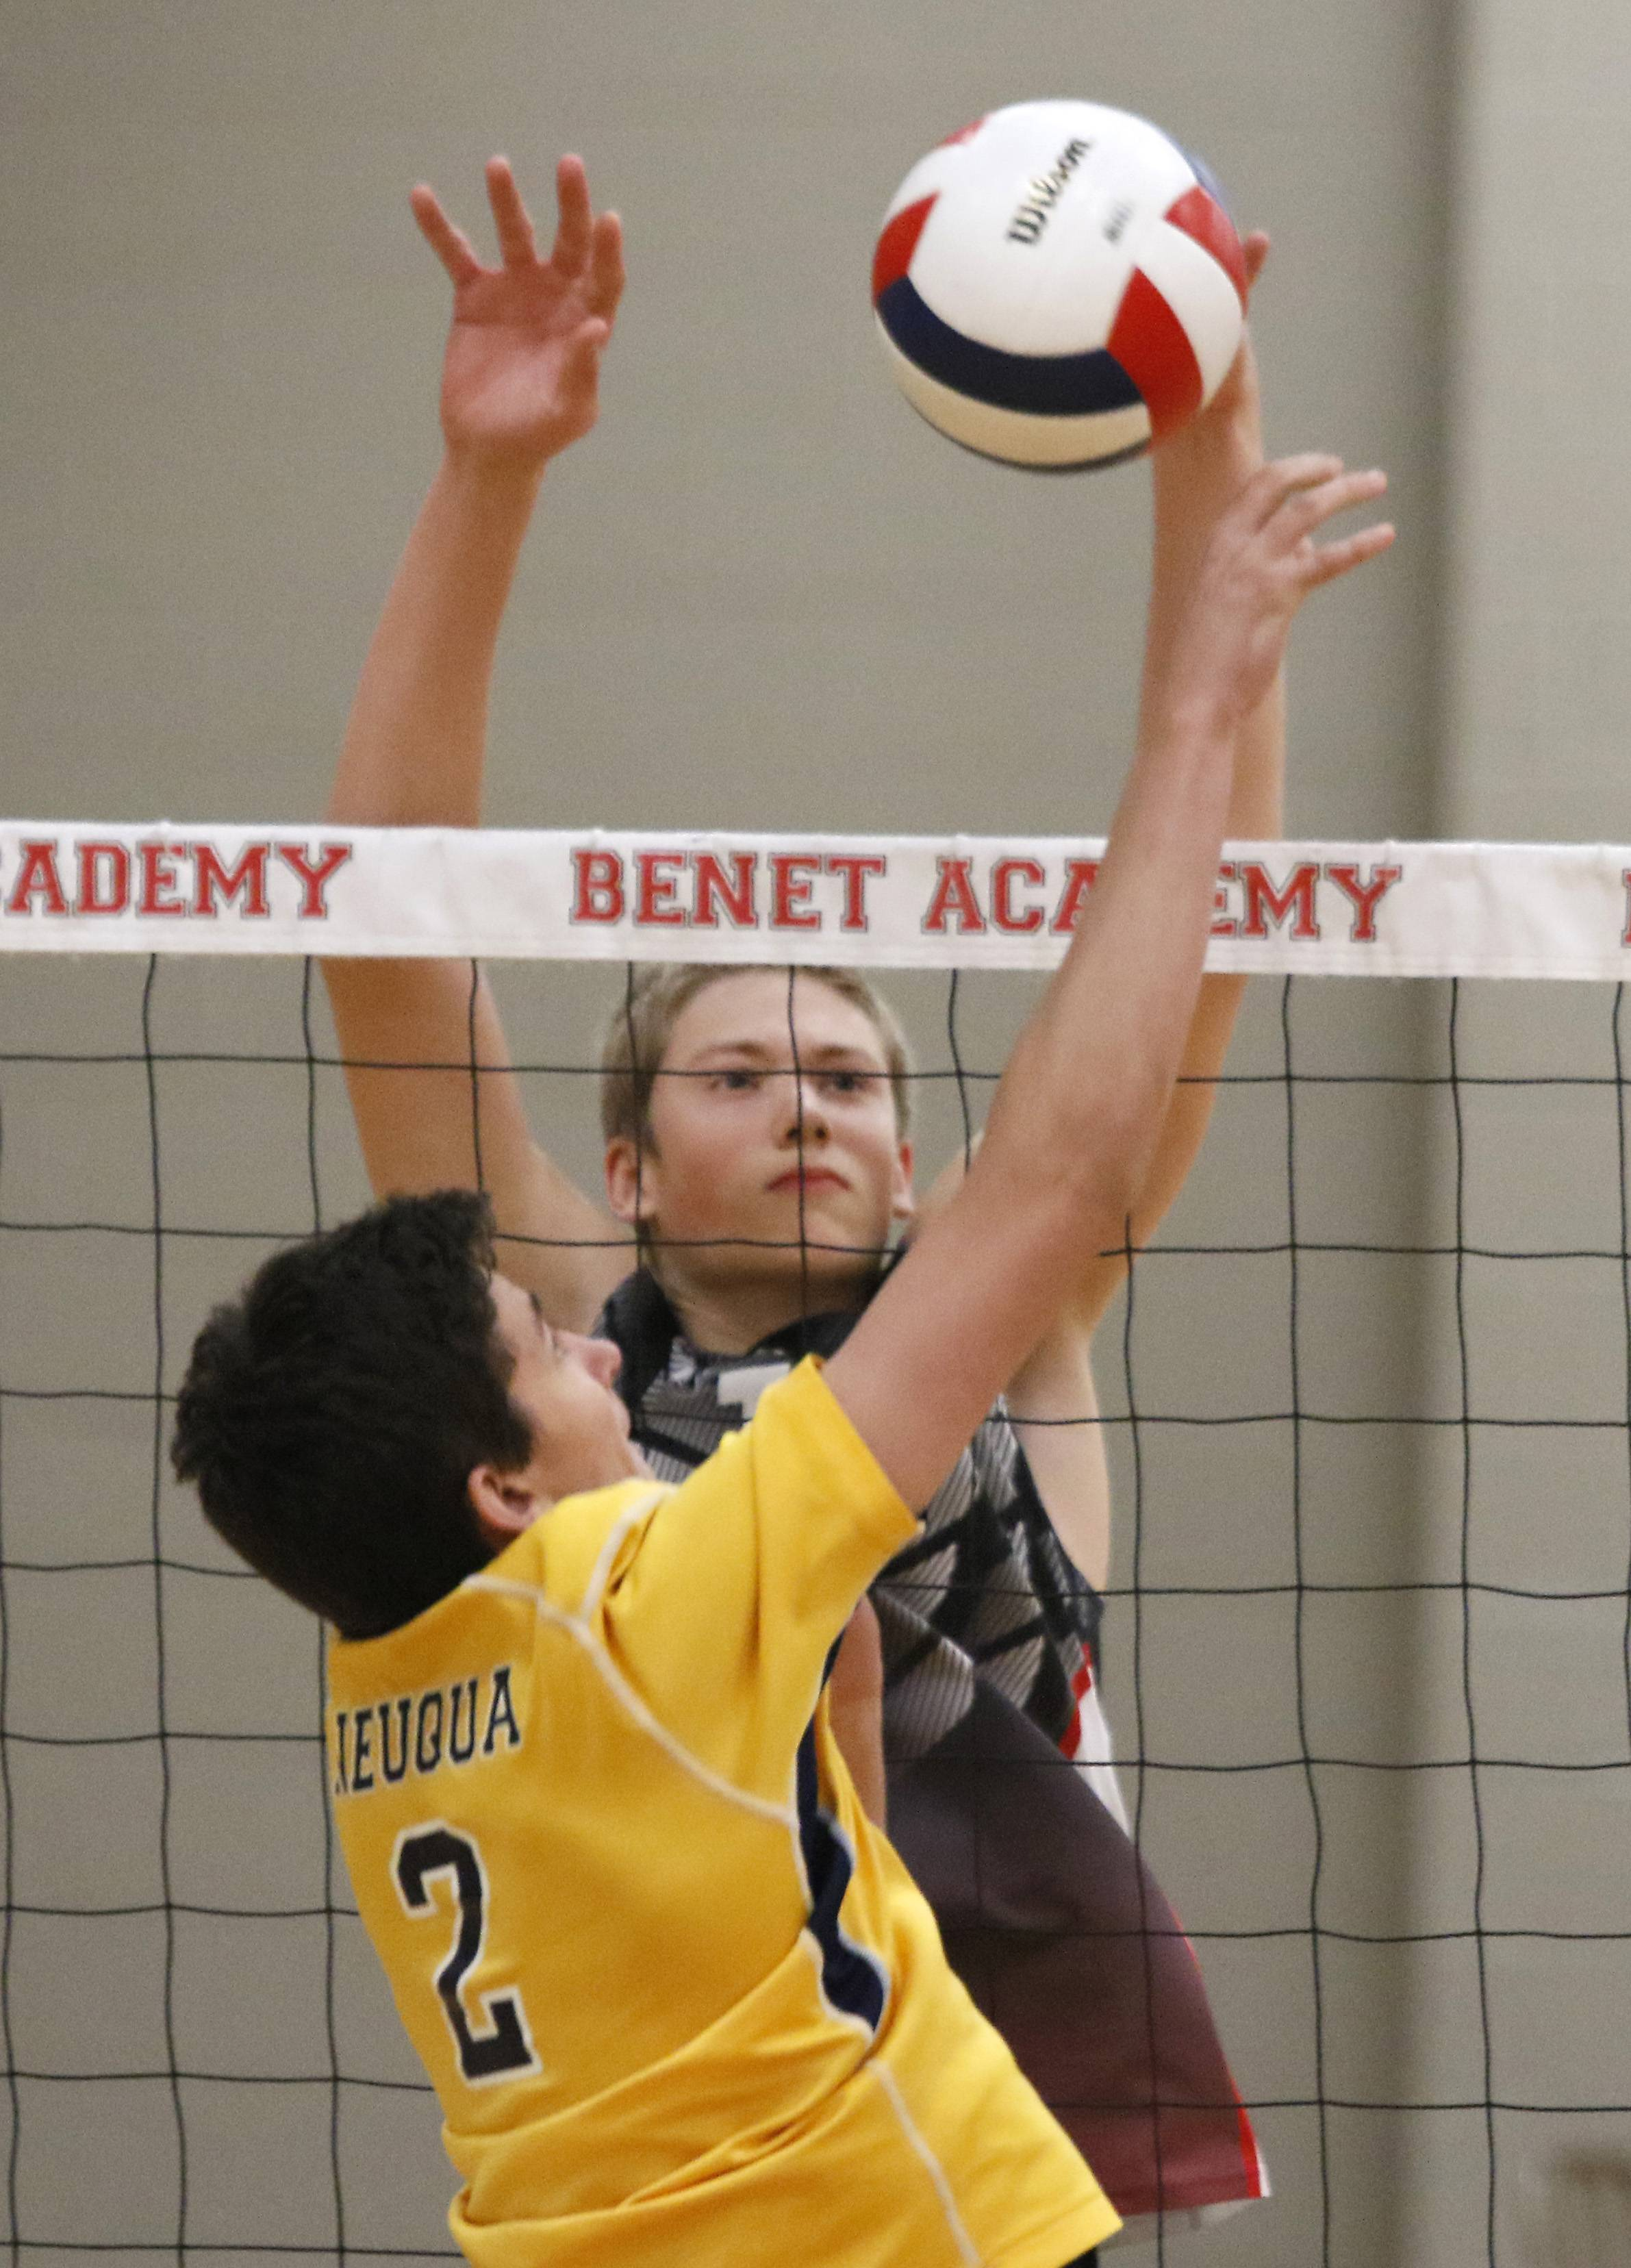 Neuqua Valley's Aaron McKinley (2) battles at the net against Benet Academy's Jackson Van Eekeren during the 11th annual Benet Academy Boys' Volleyball Invitational.